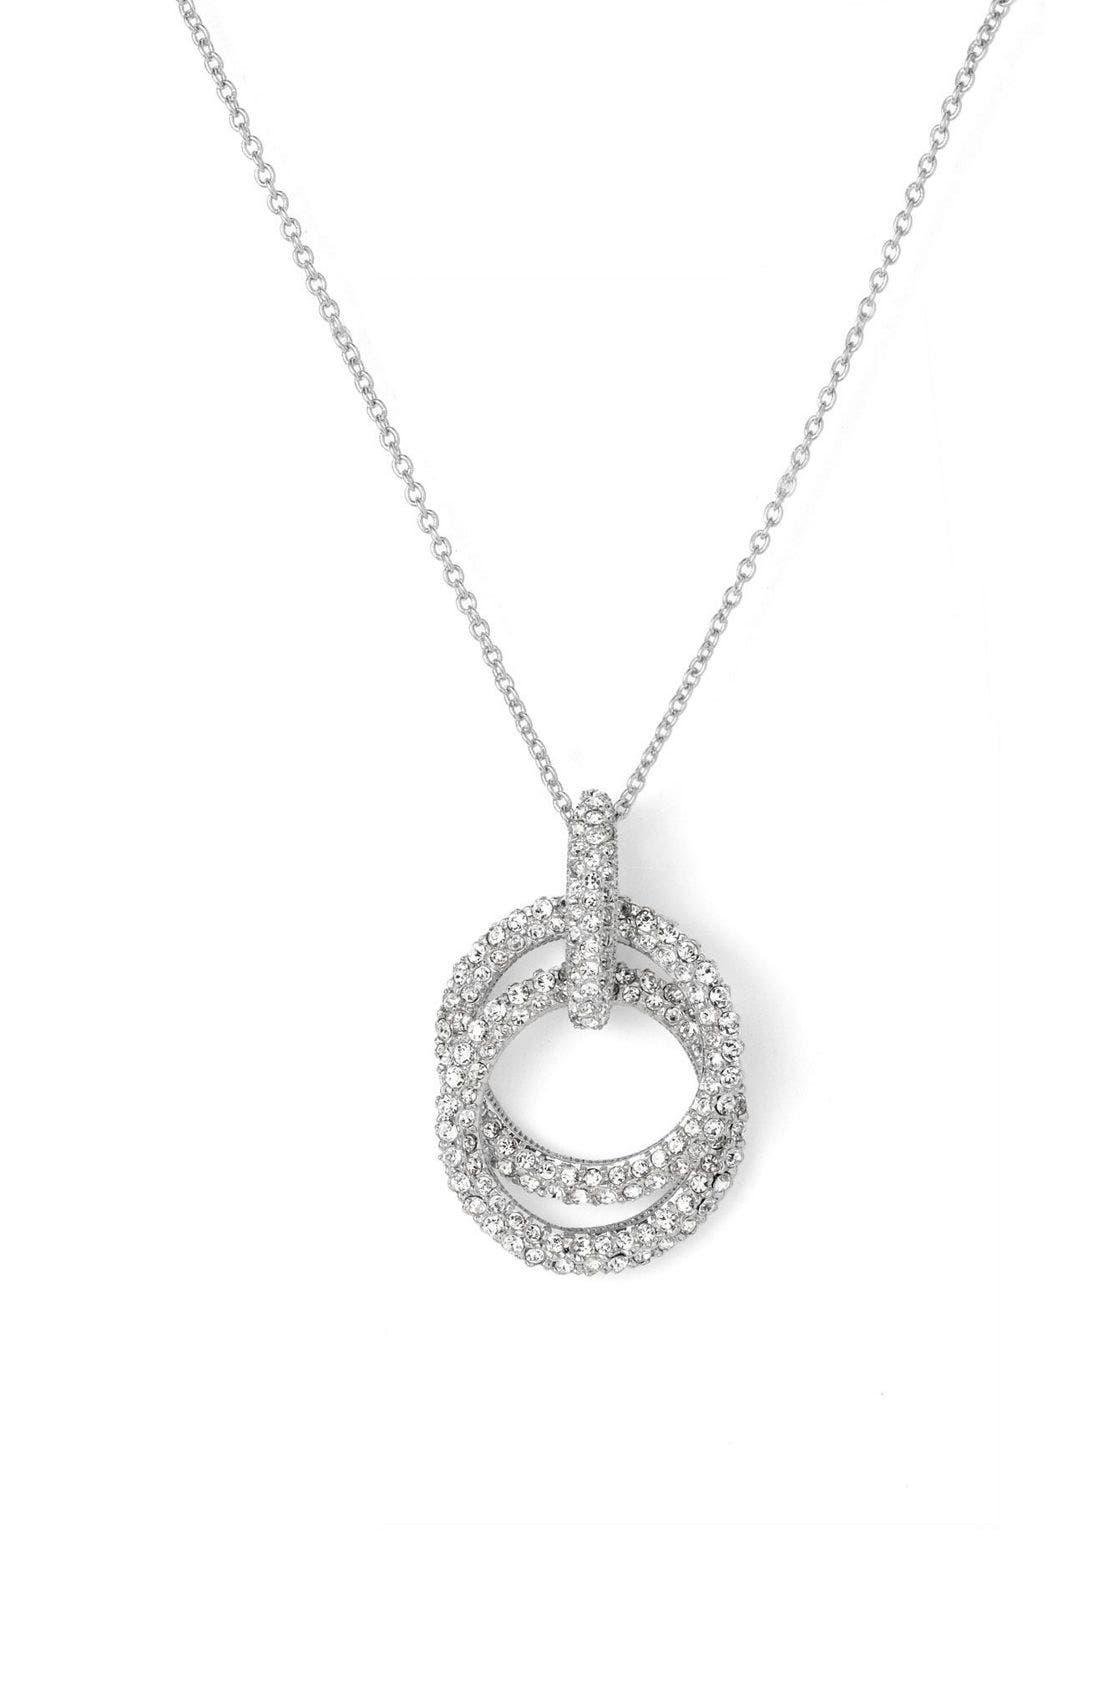 Main Image - Nadri Double Ring Pendant Necklace